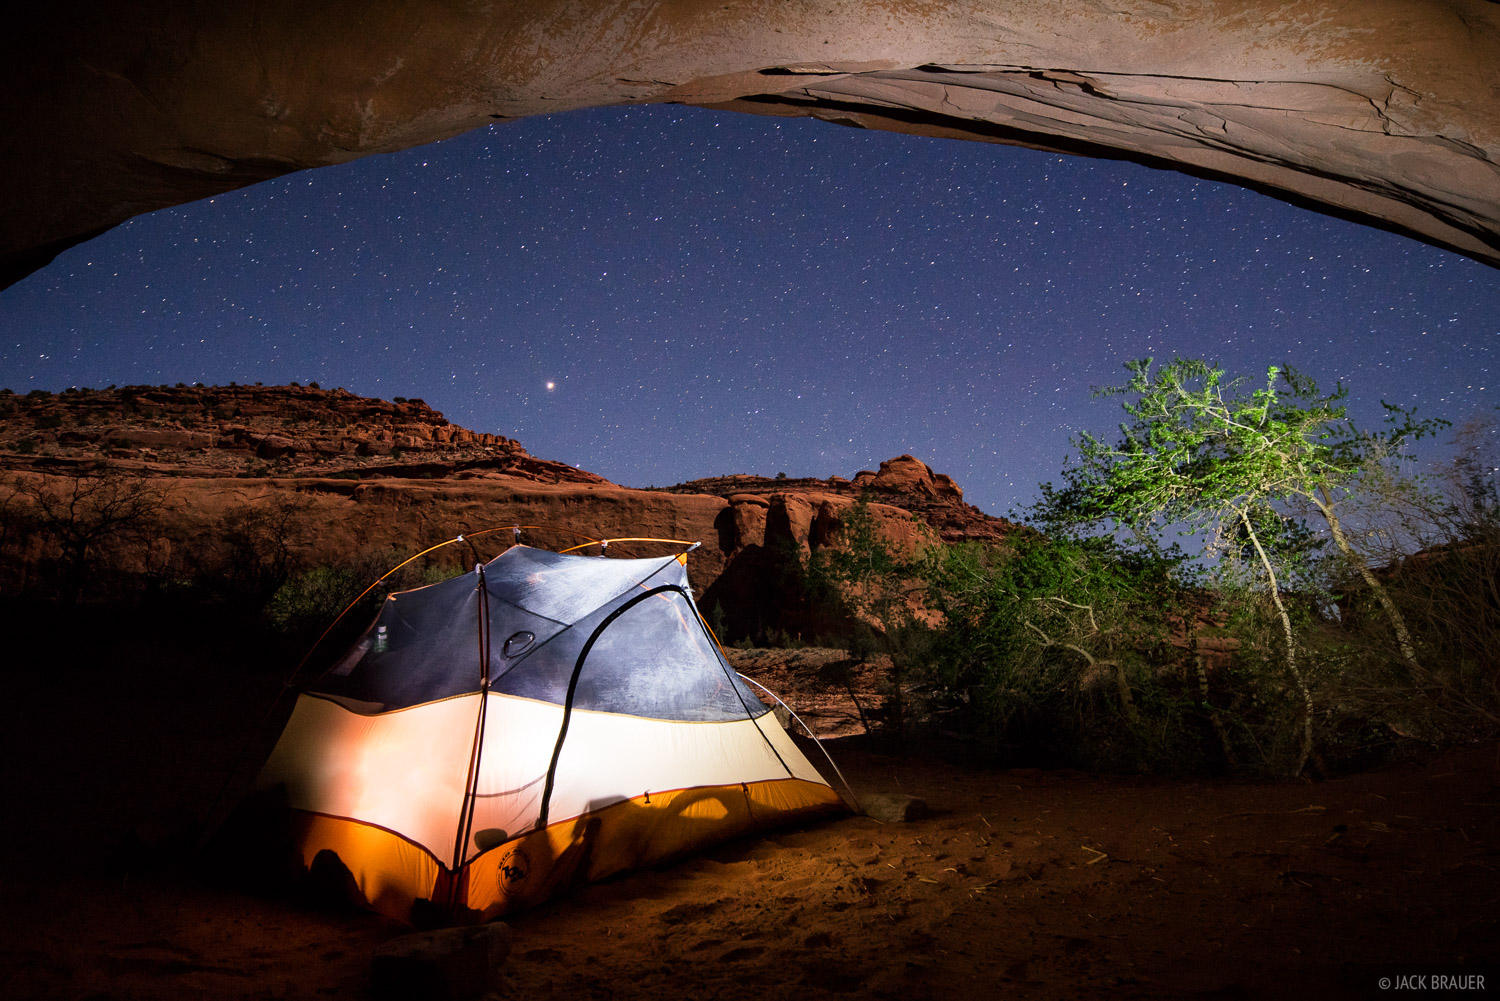 Choprock Canyon, Escalante, Escalante National Monument, Utah, alcove, camping, tent, stars, Grand Staircase-Escalante National Monument, photo